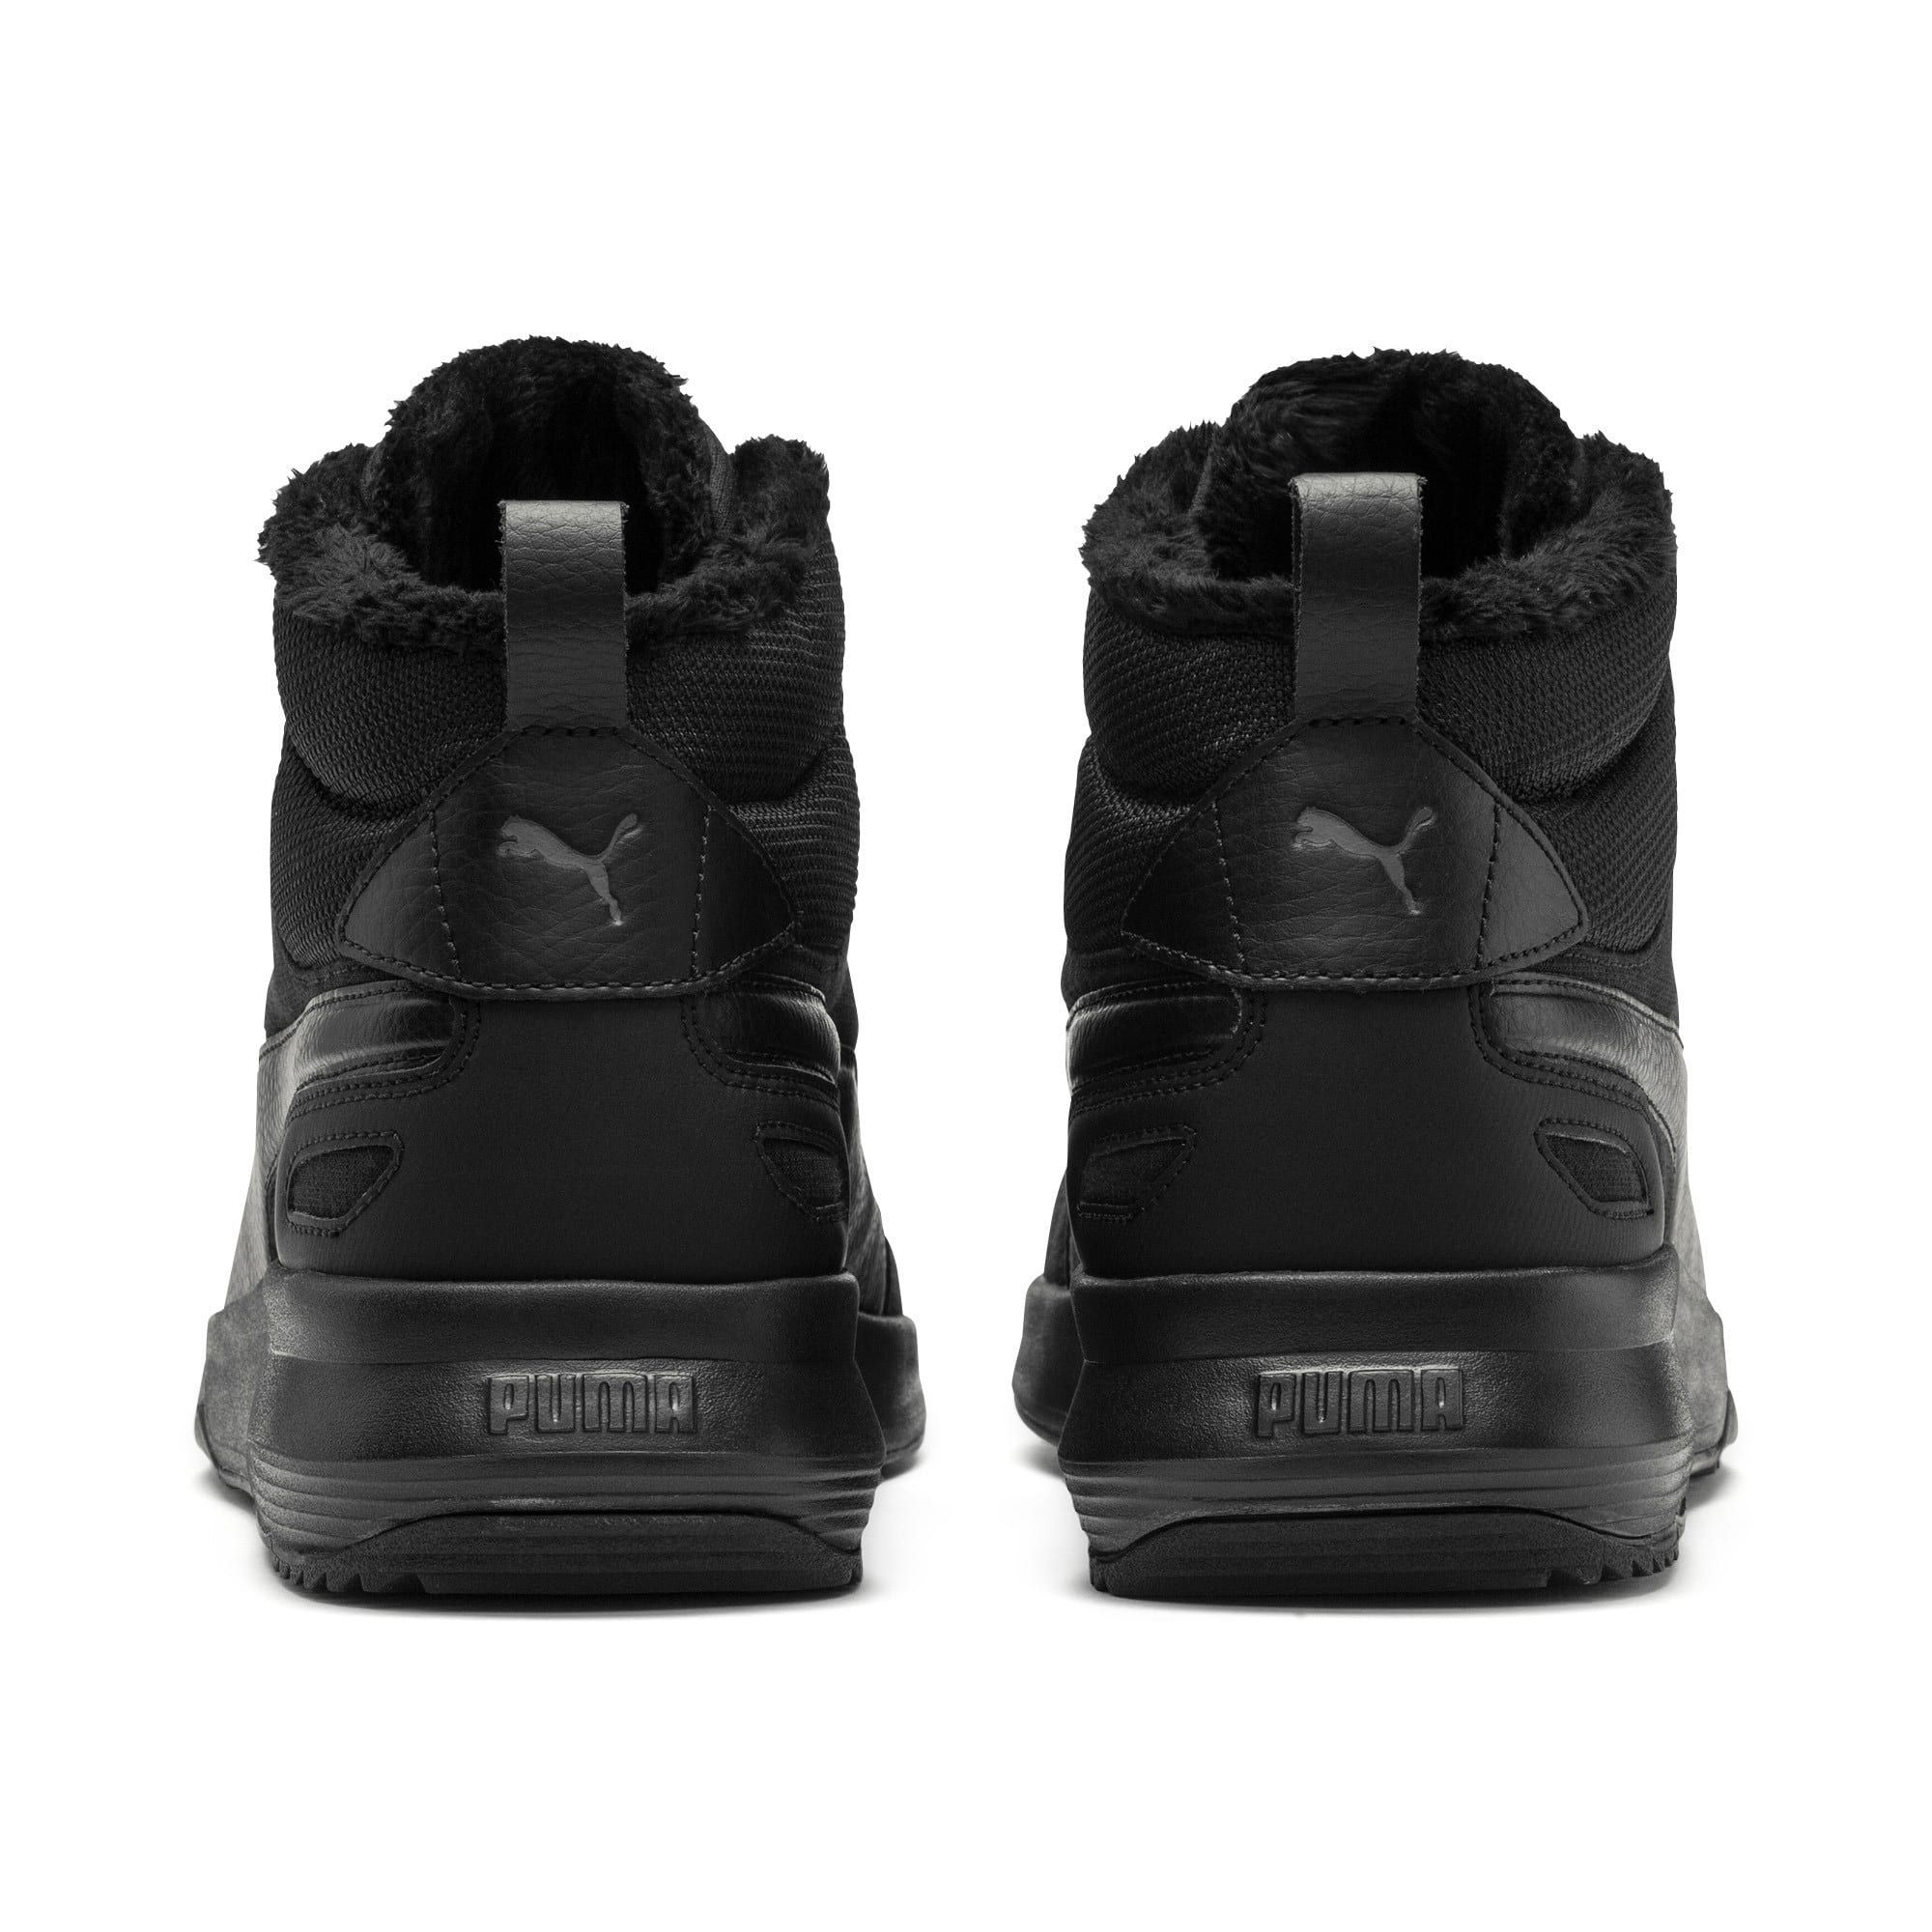 Thumbnail 4 of Activate Mid-Cut Boots, Puma Black-Puma Black, medium